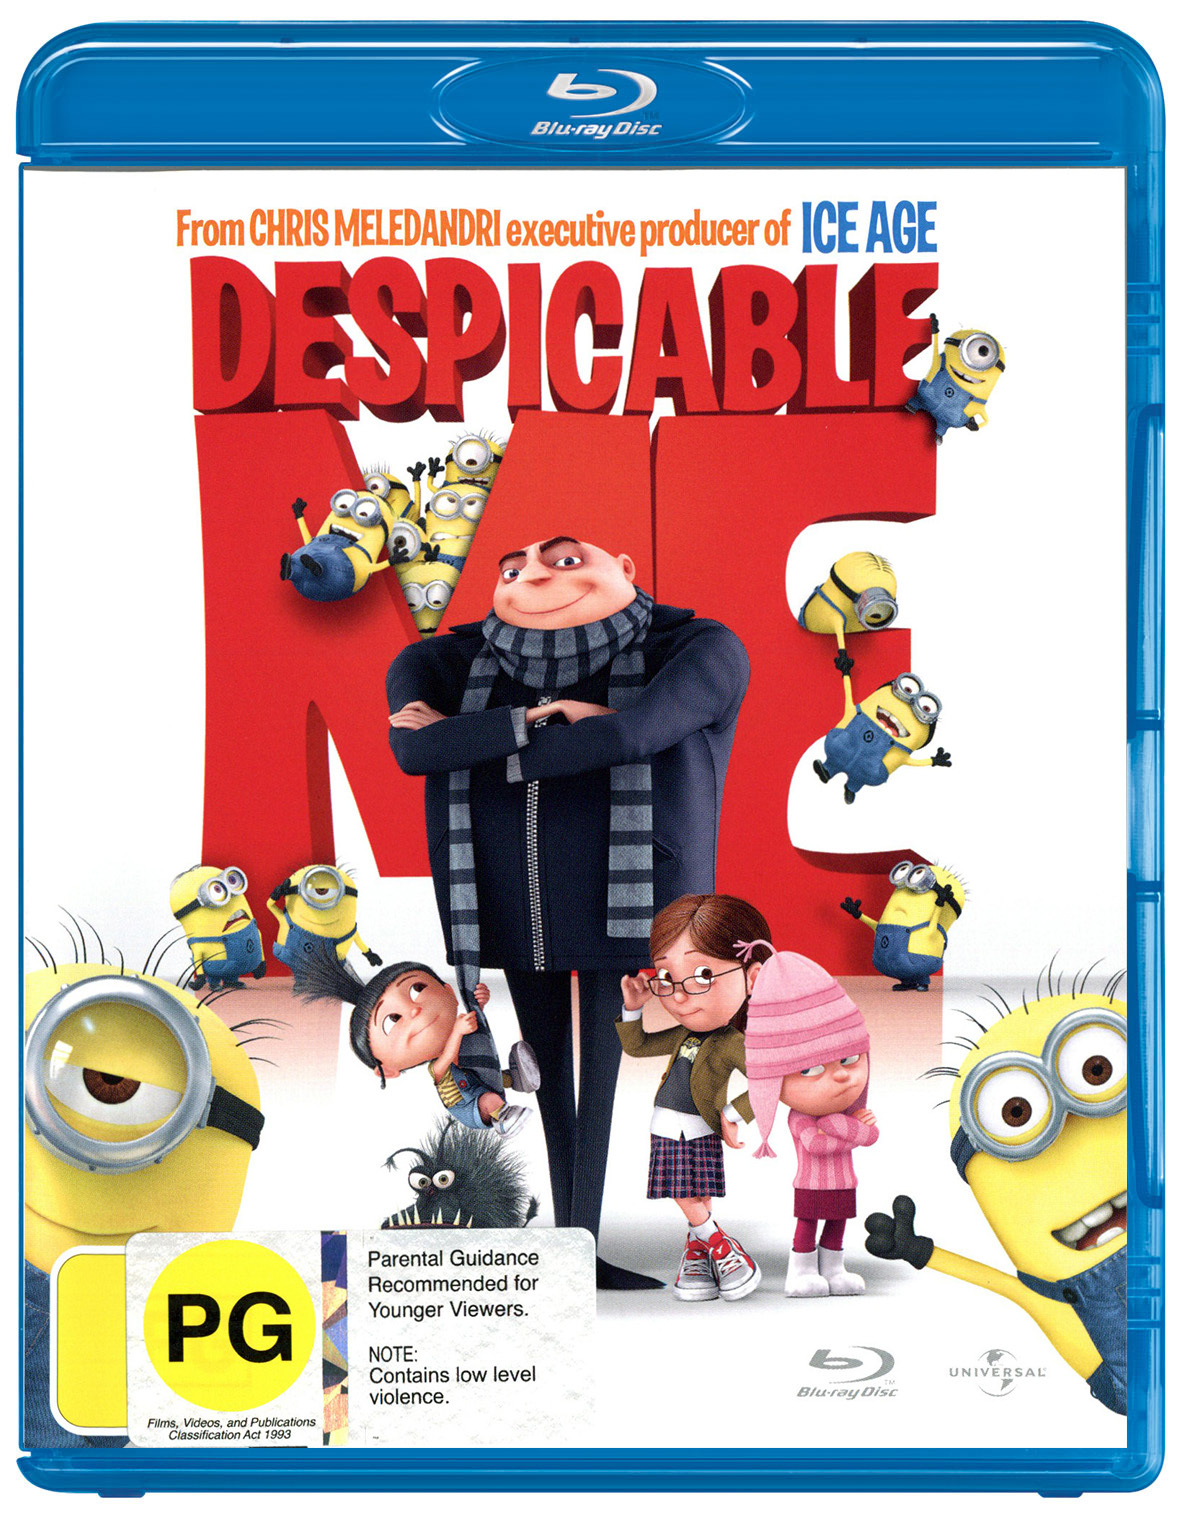 Despicable Me on Blu-ray image